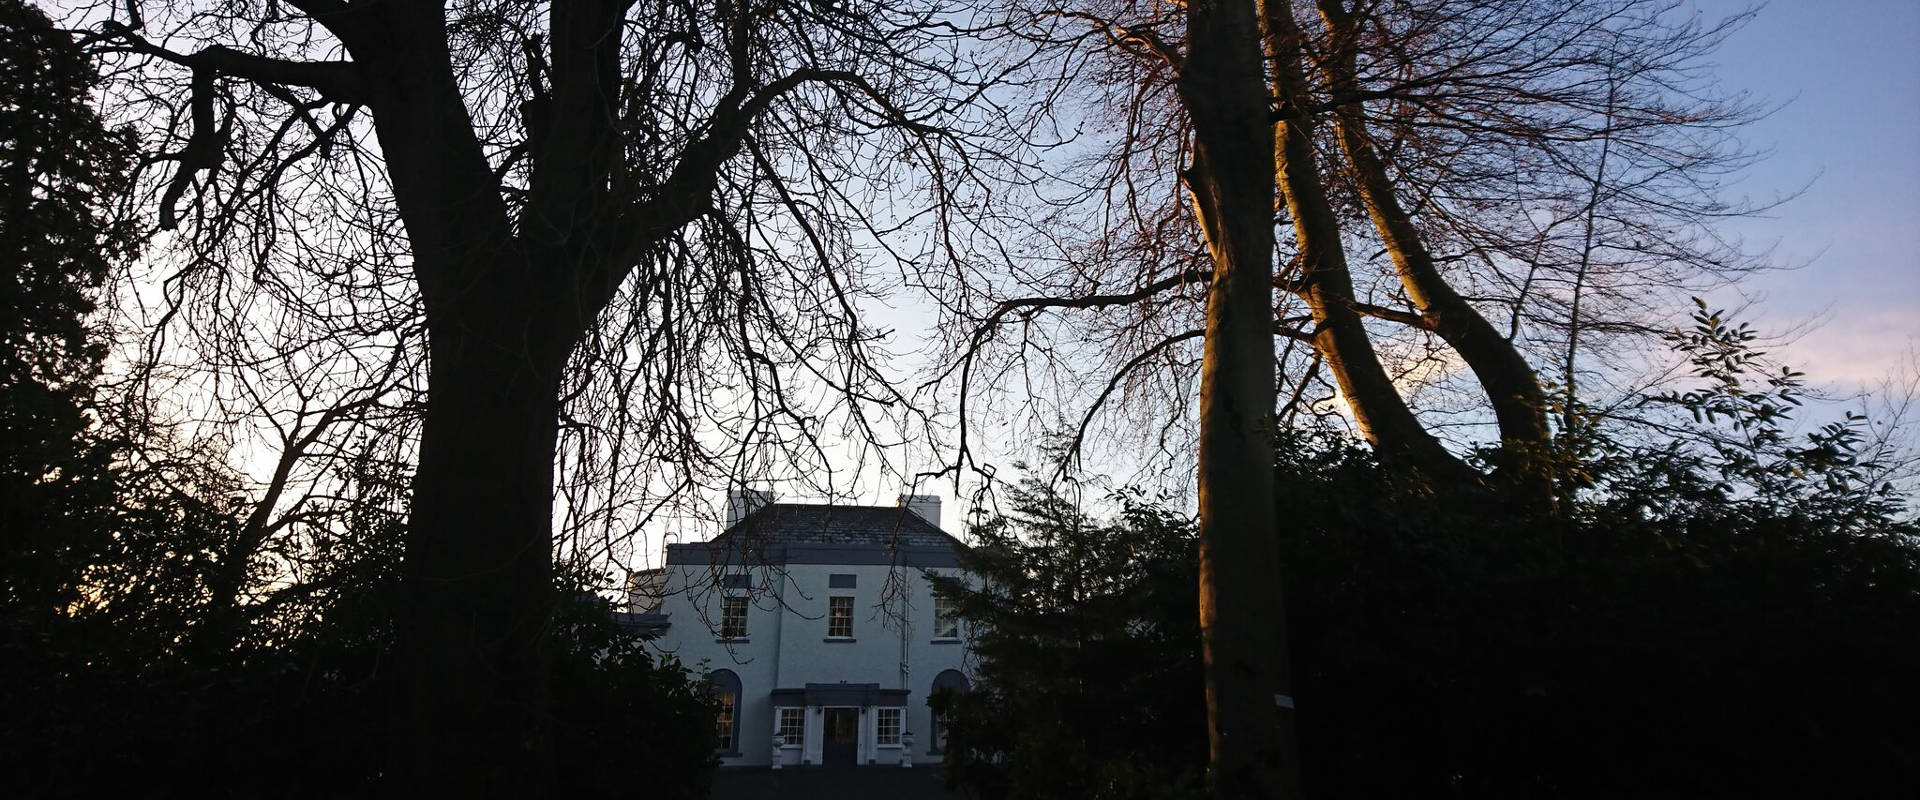 Leixlip Manor House evening